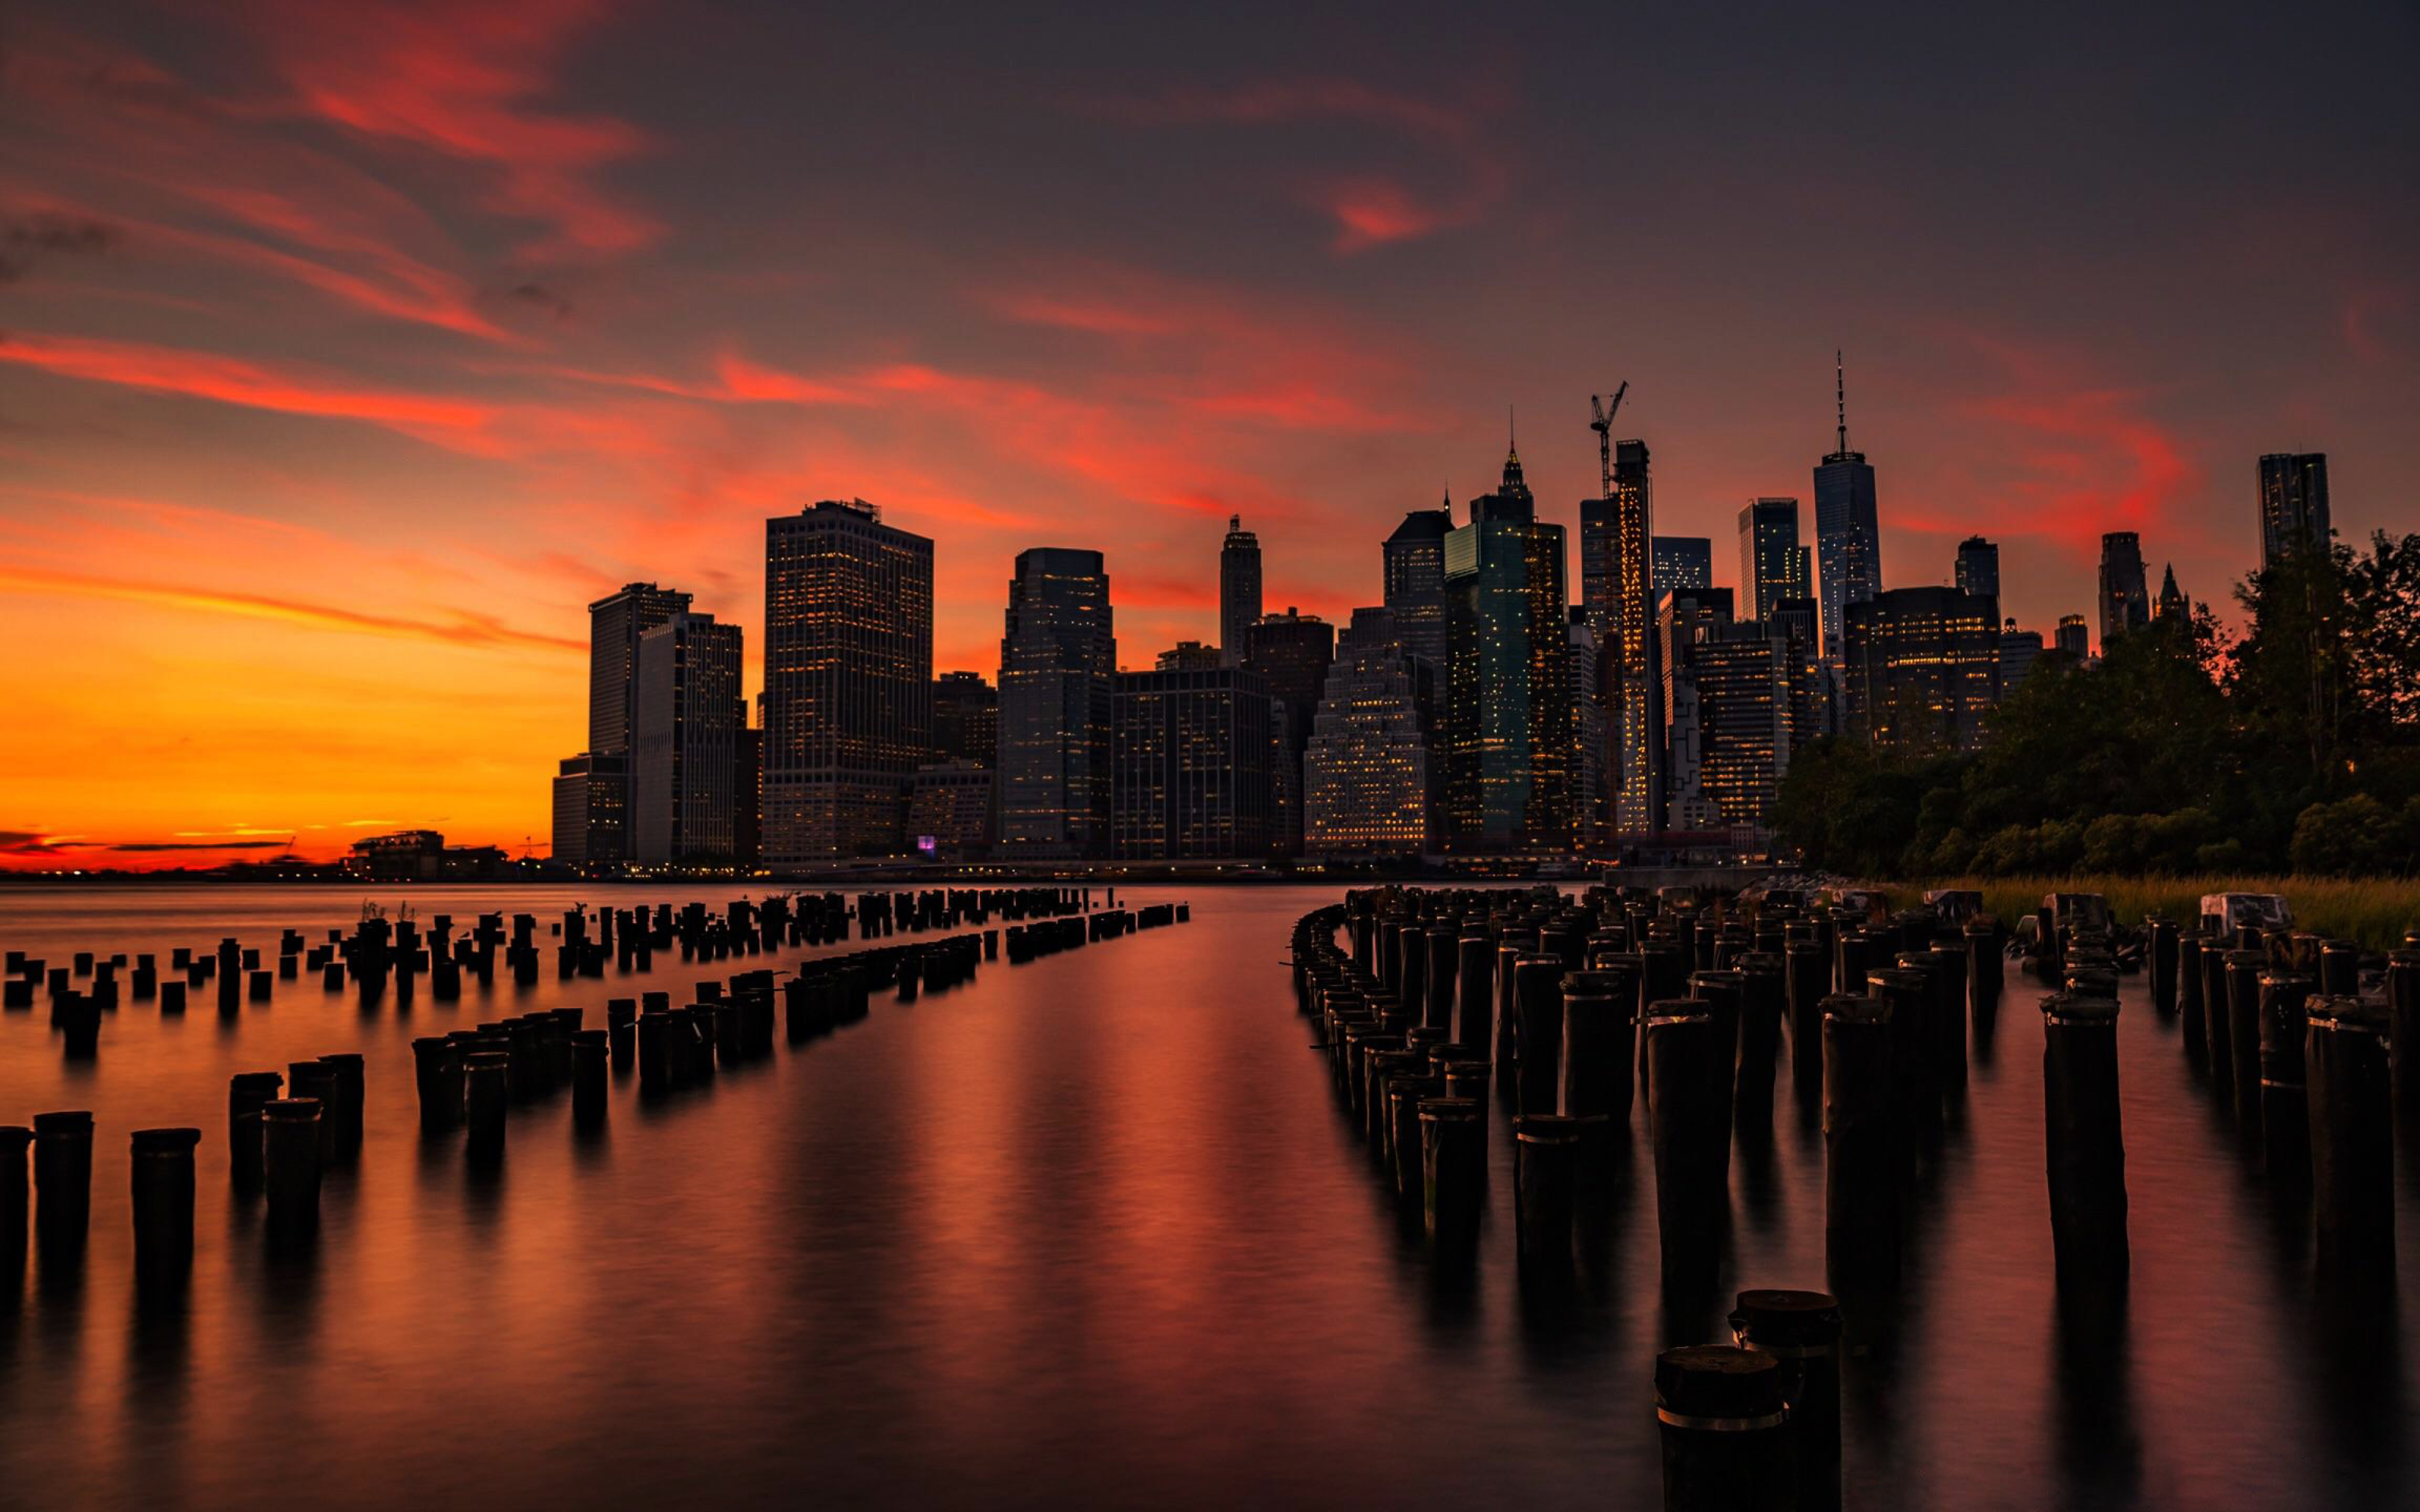 3840x2400 New York Sunset 4k 3840x2400 Resolution Wallpaper Hd Nature 4k Wallpapers Images Photos And Background